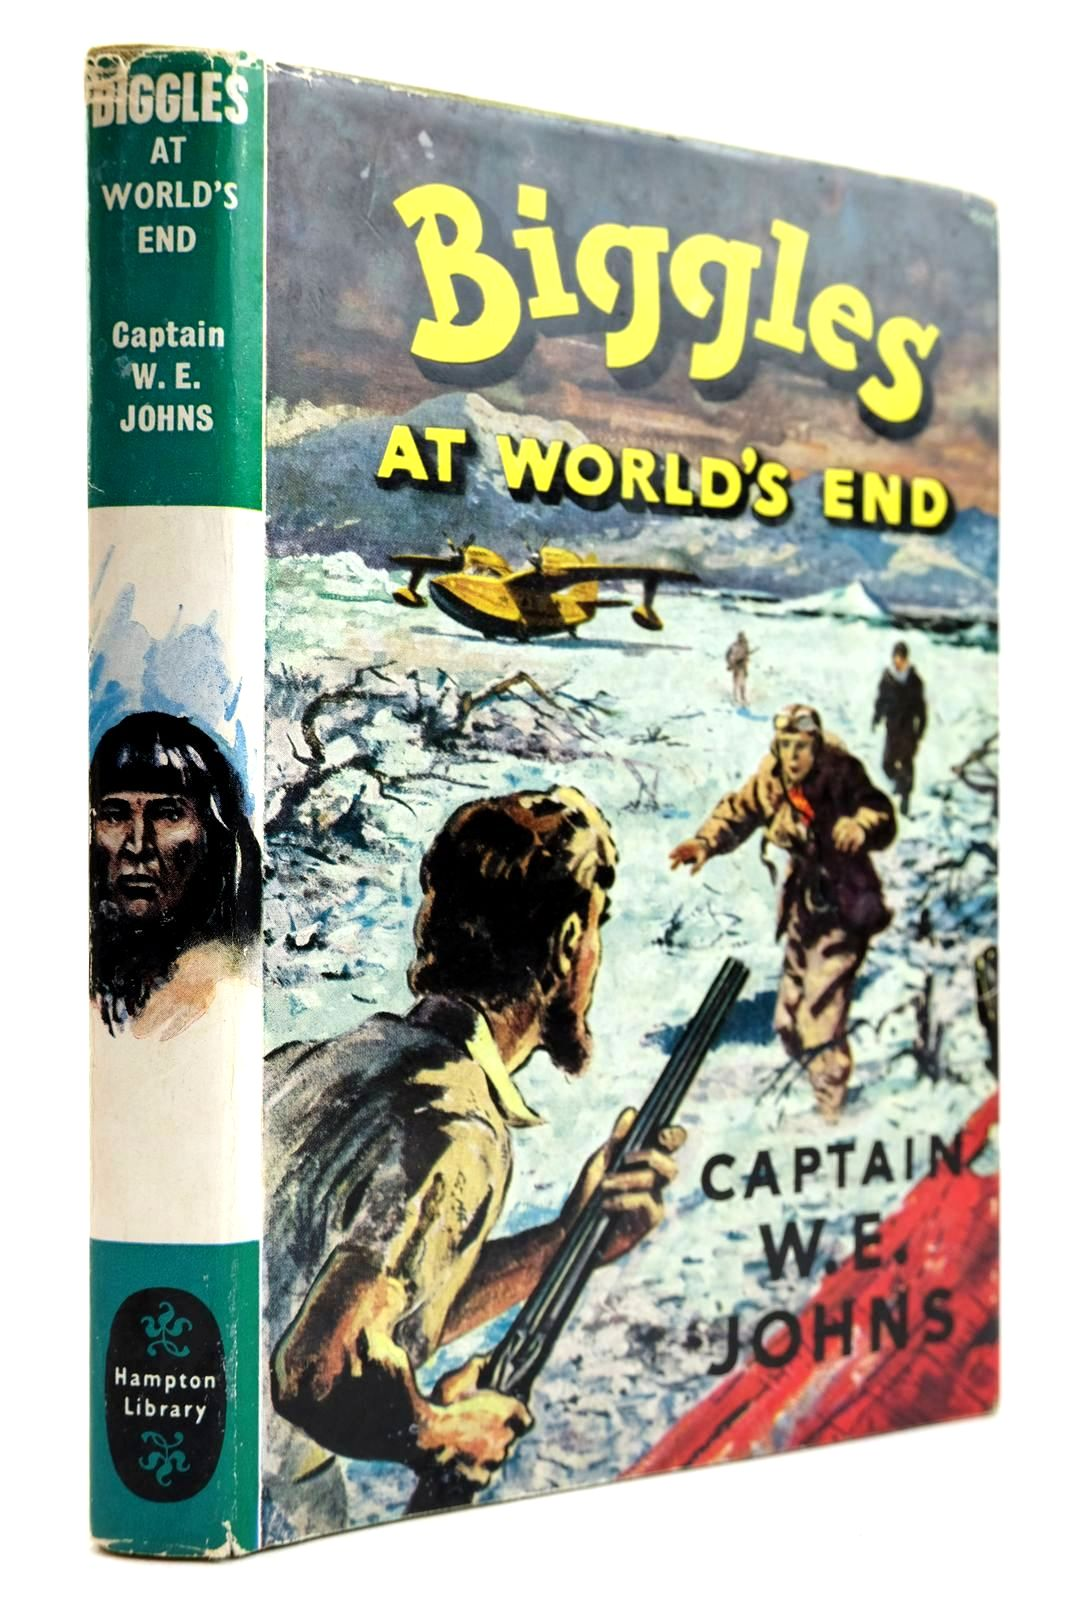 Photo of BIGGLES AT WORLD'S END written by Johns, W.E. published by Brockhampton Press (STOCK CODE: 2132494)  for sale by Stella & Rose's Books